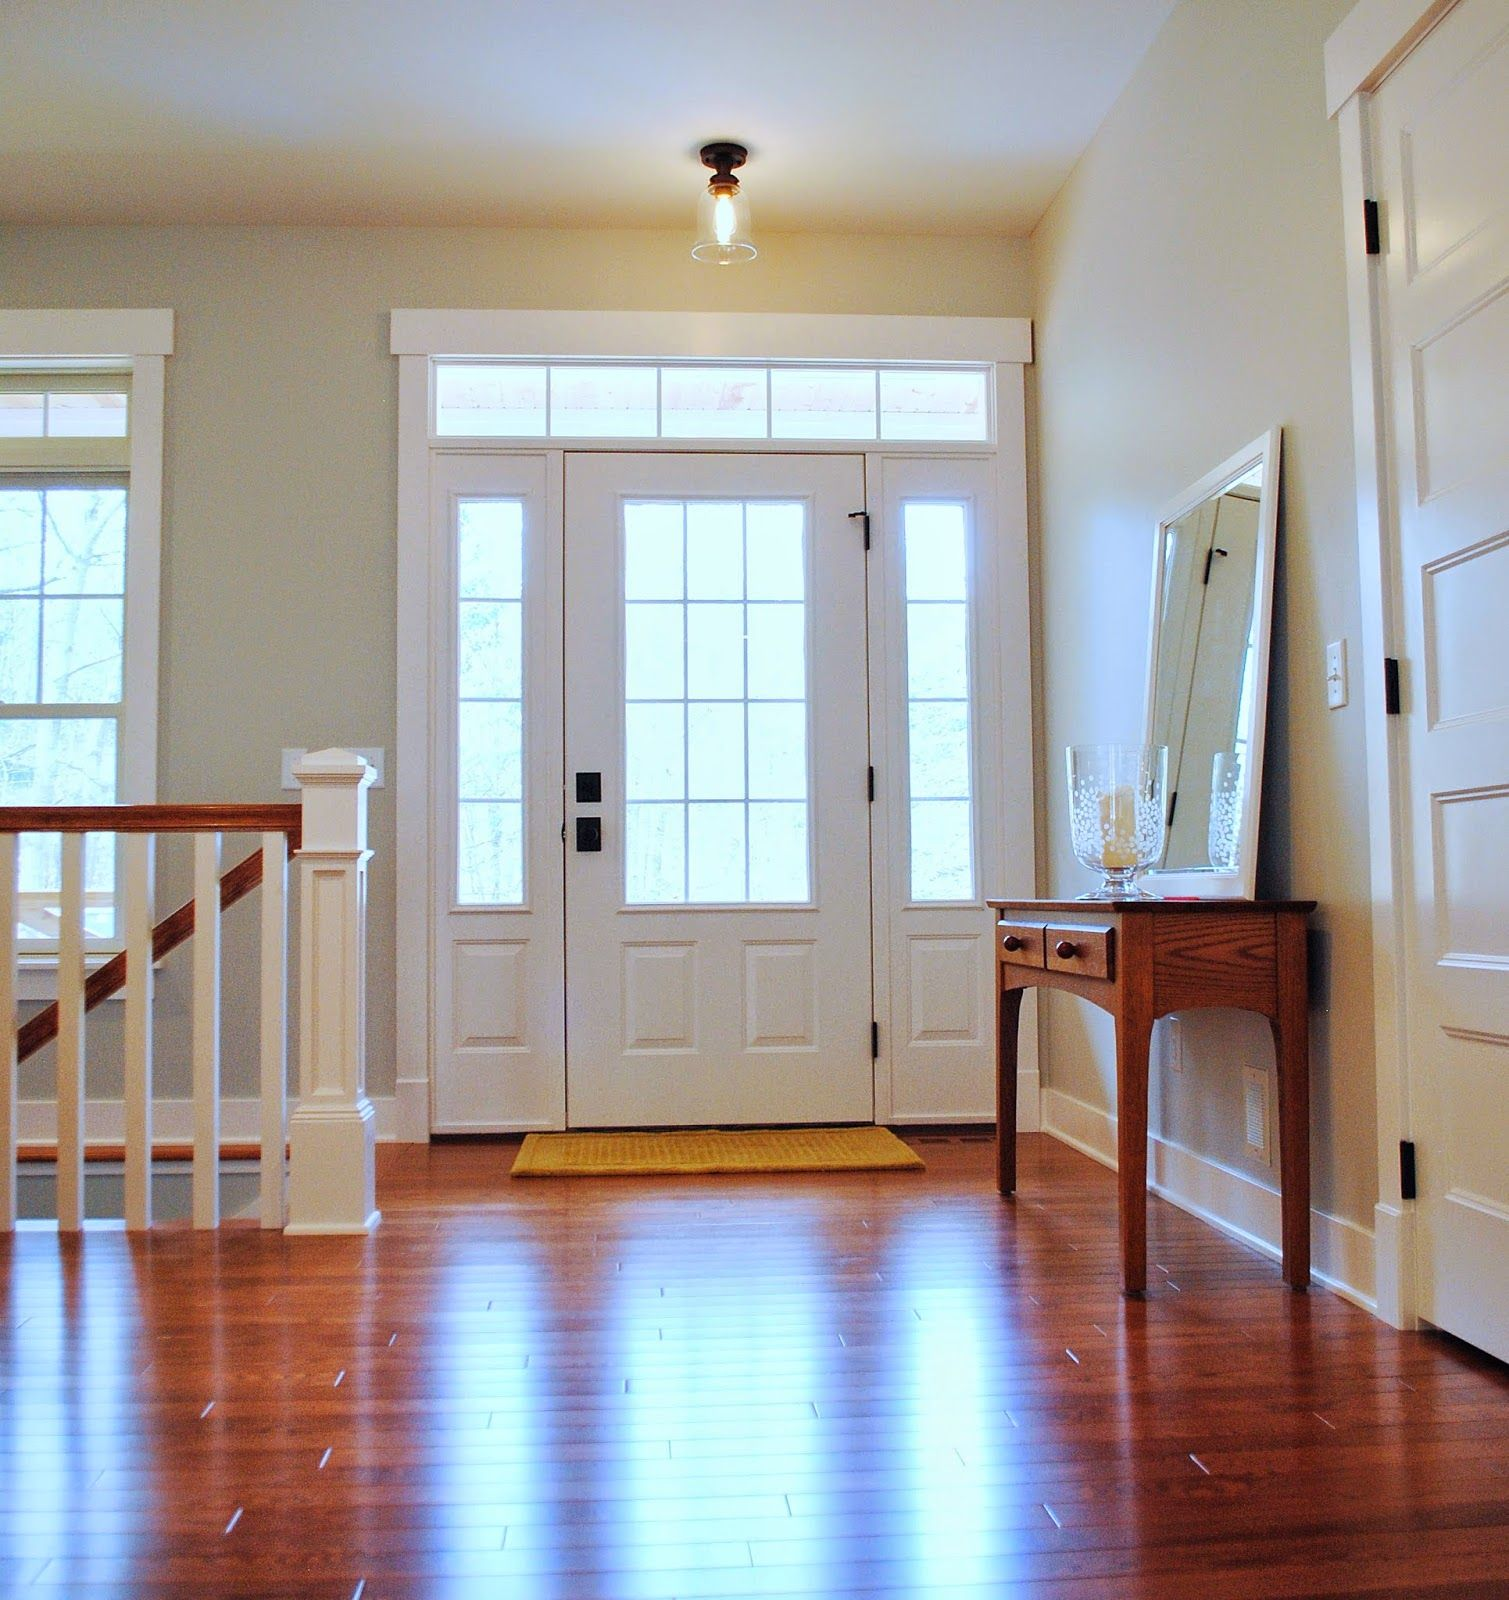 Interior 3 4 light colonial front door with transom and for Colonial entry door